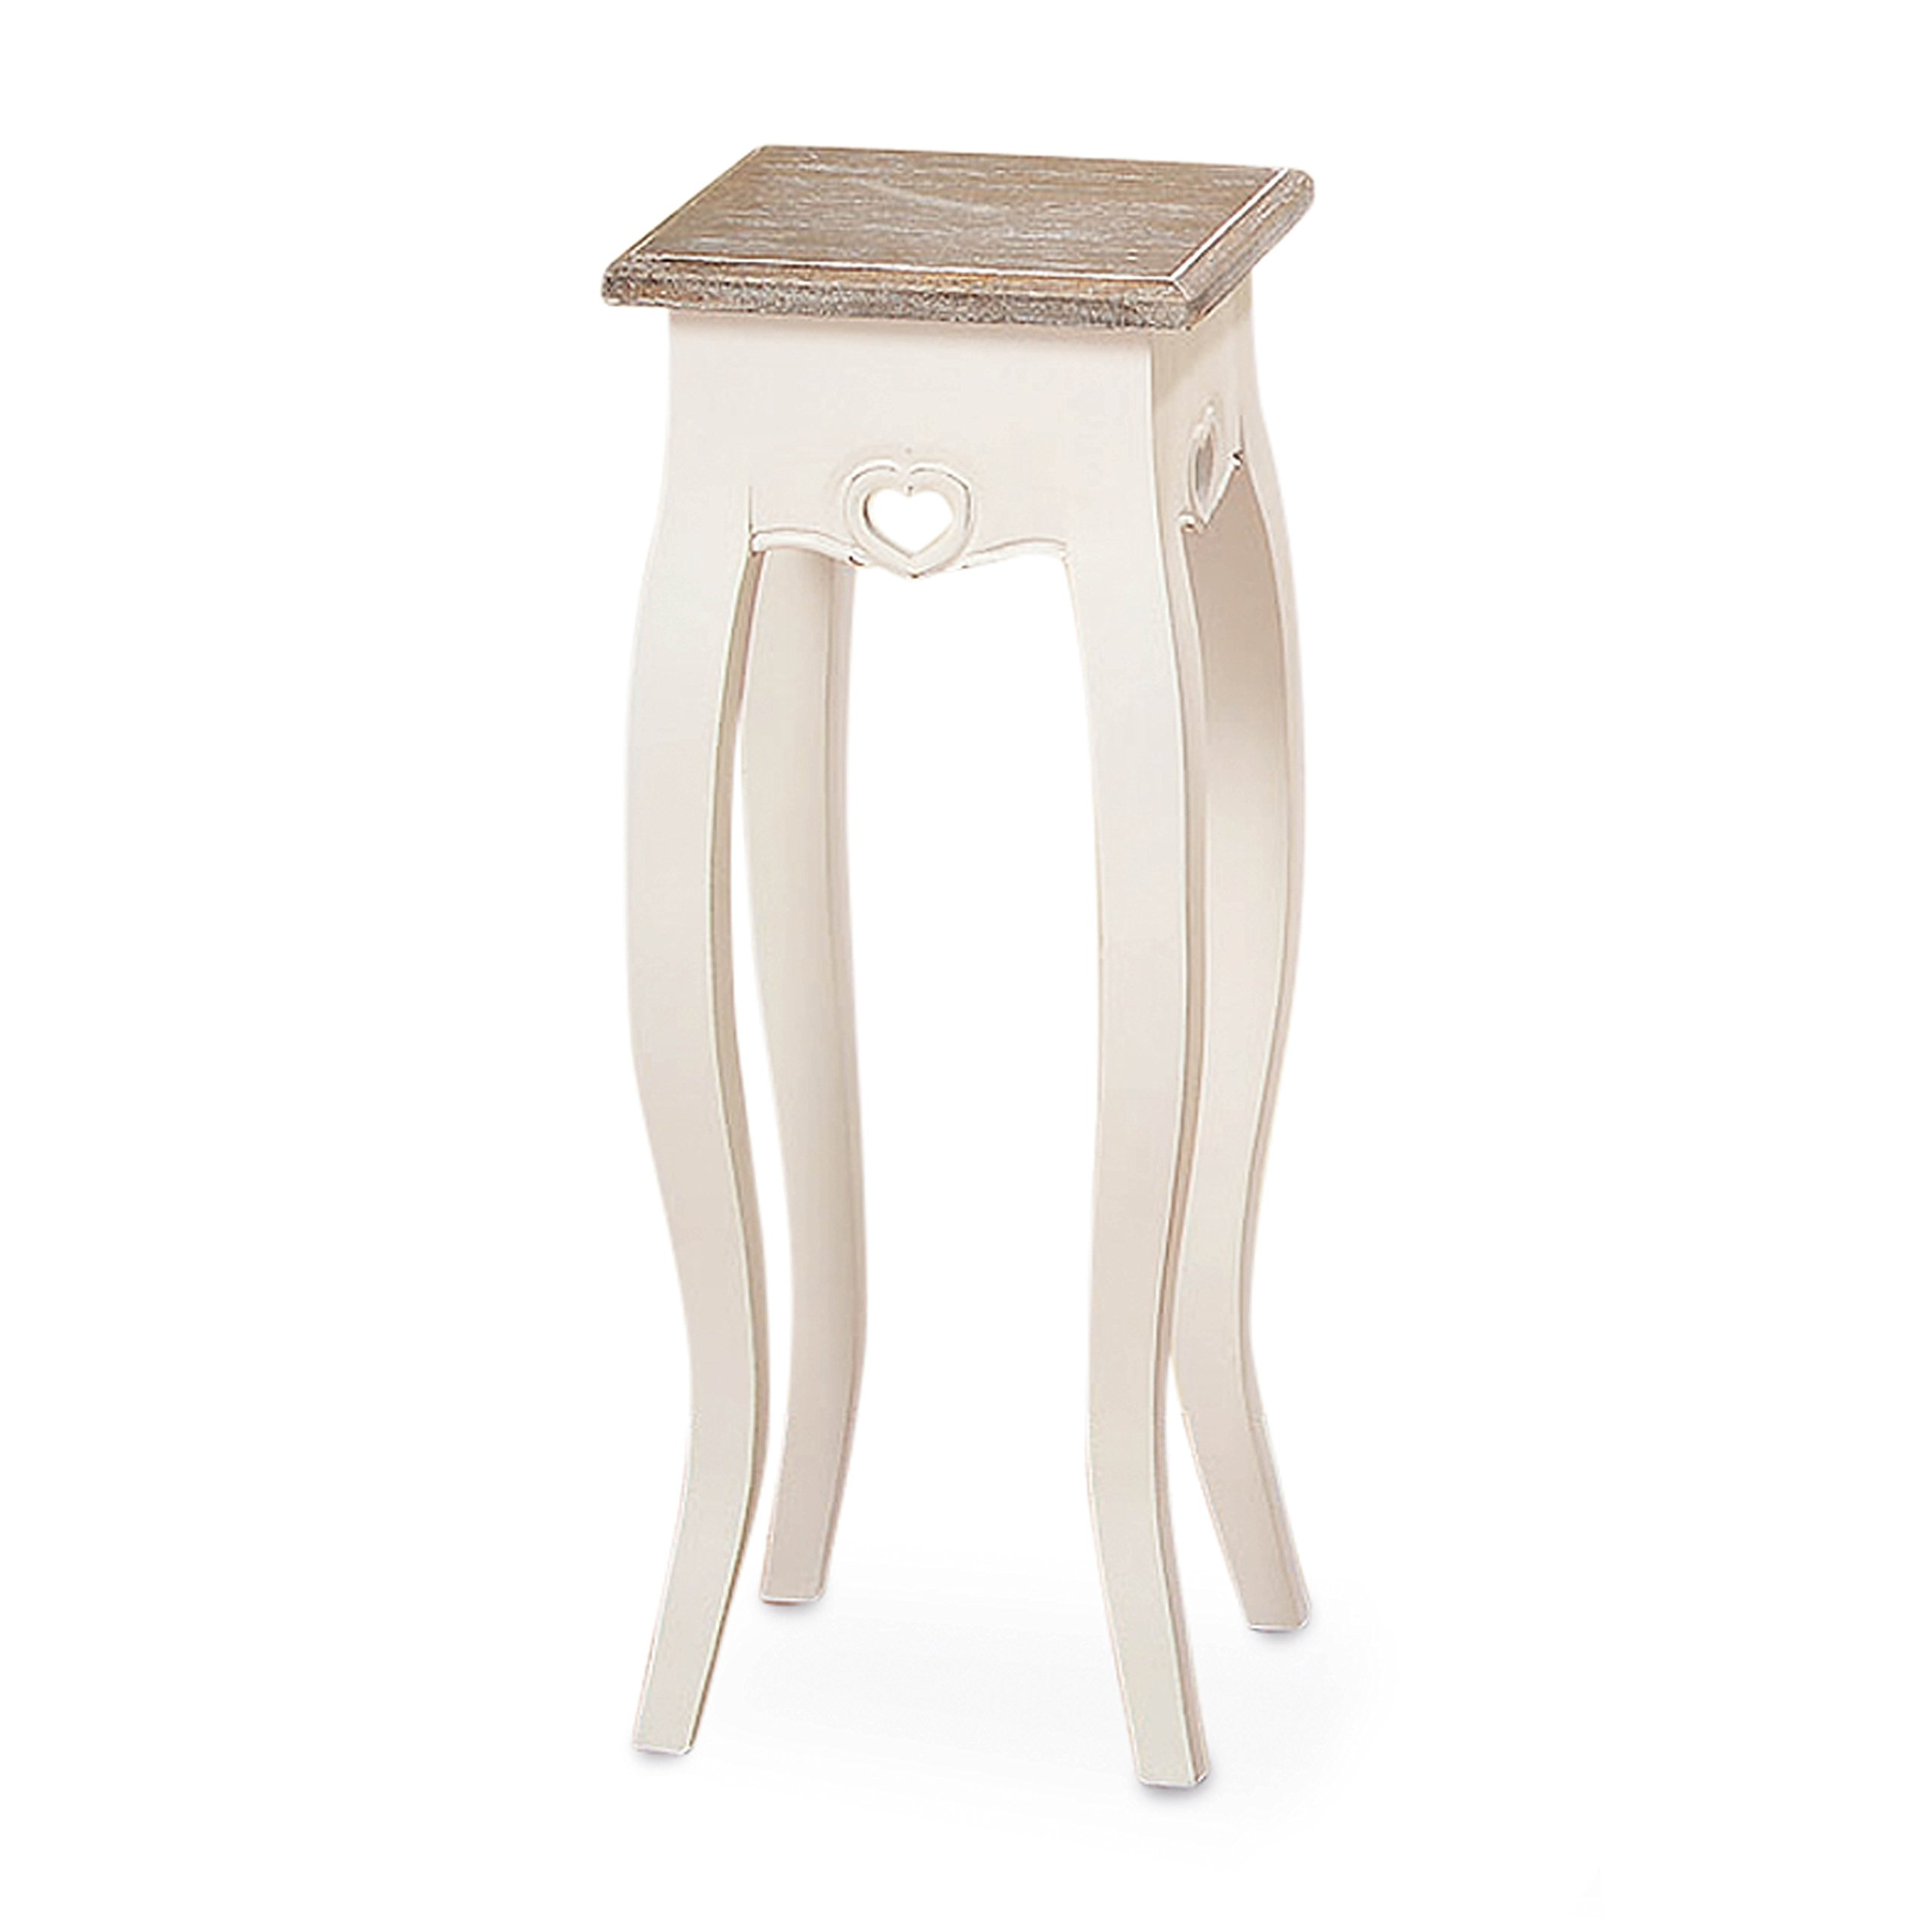 The French Country Style Pedestal Table, Shabby Chic Distressed Finish, White, Wood, Dark Top, Approx. 2 Ft Tall, (23 1/2 Inches) By Whole House Worlds